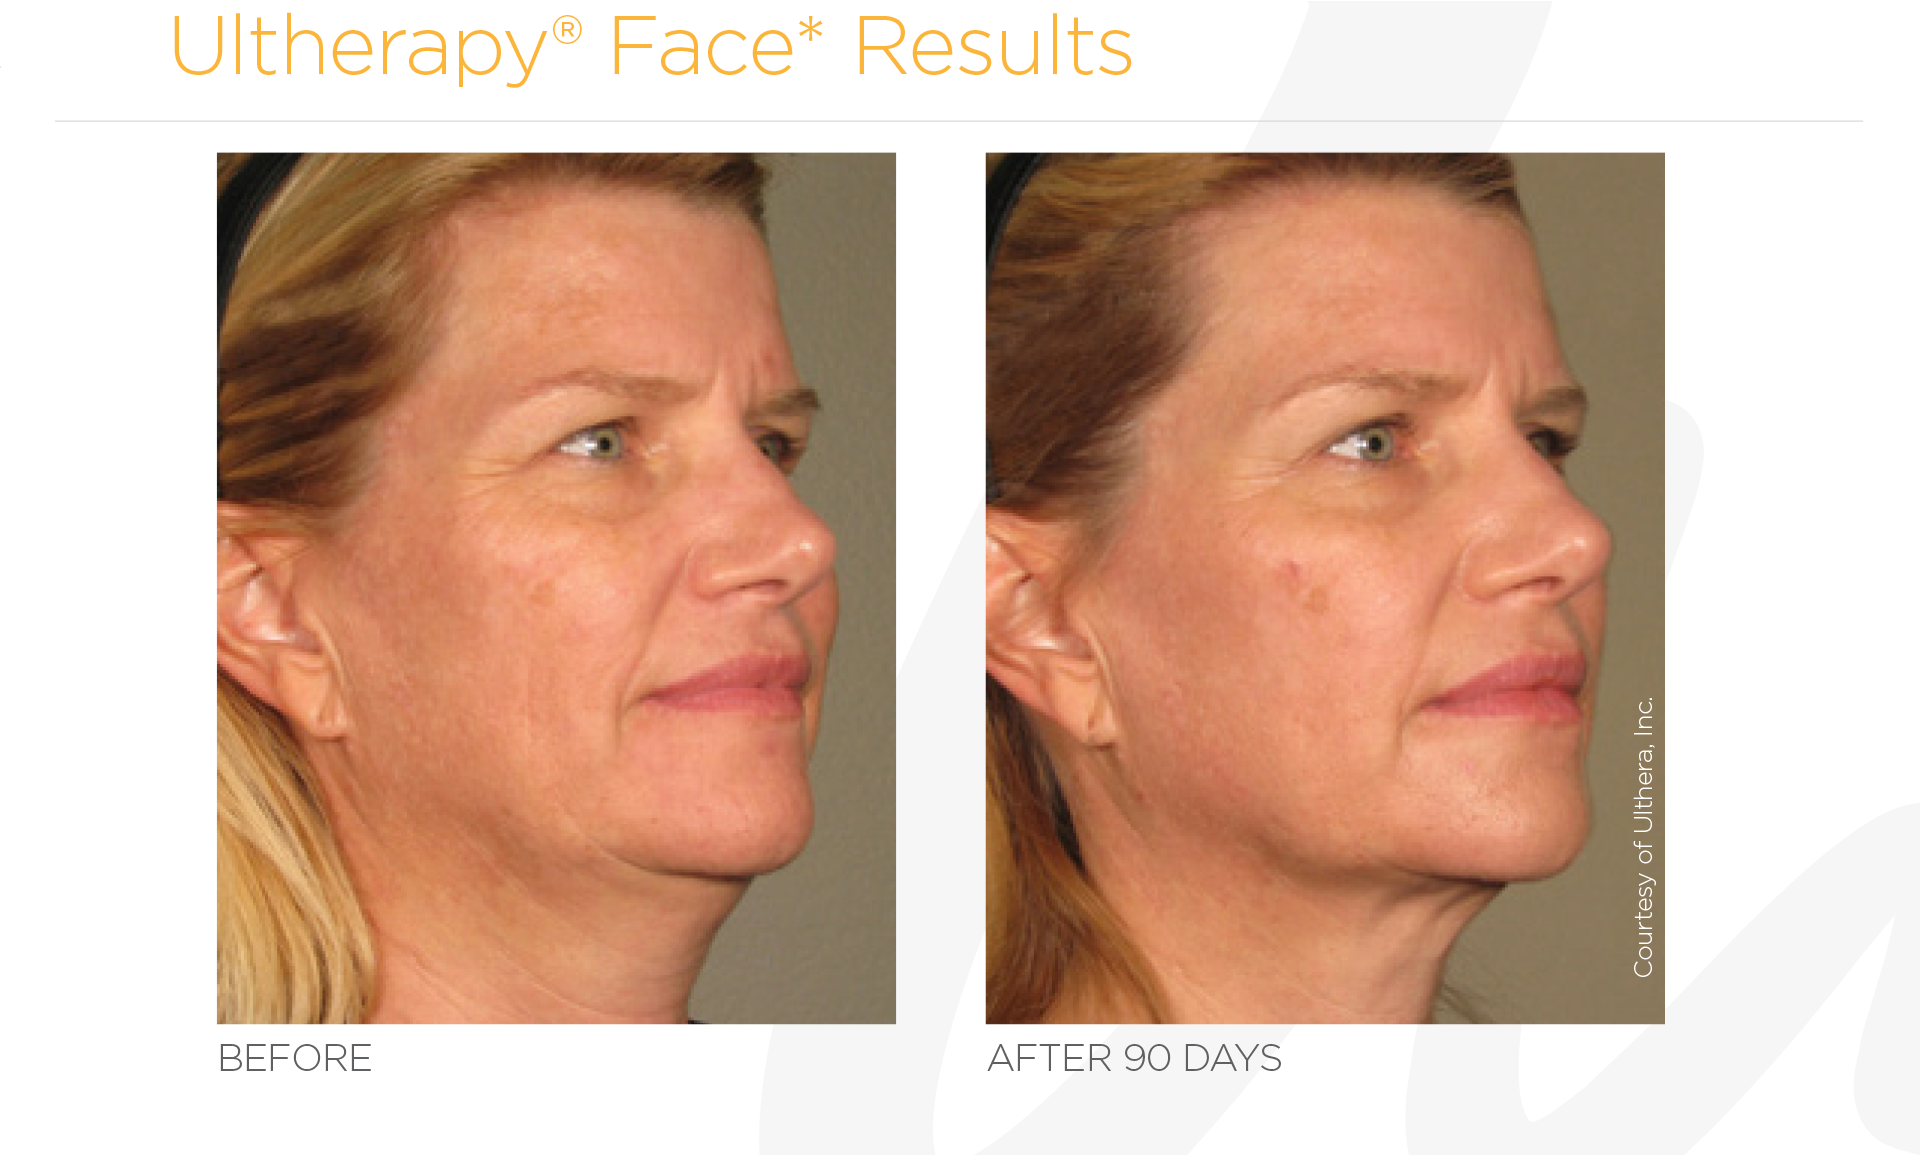 Ultherapy Face Before And After Results